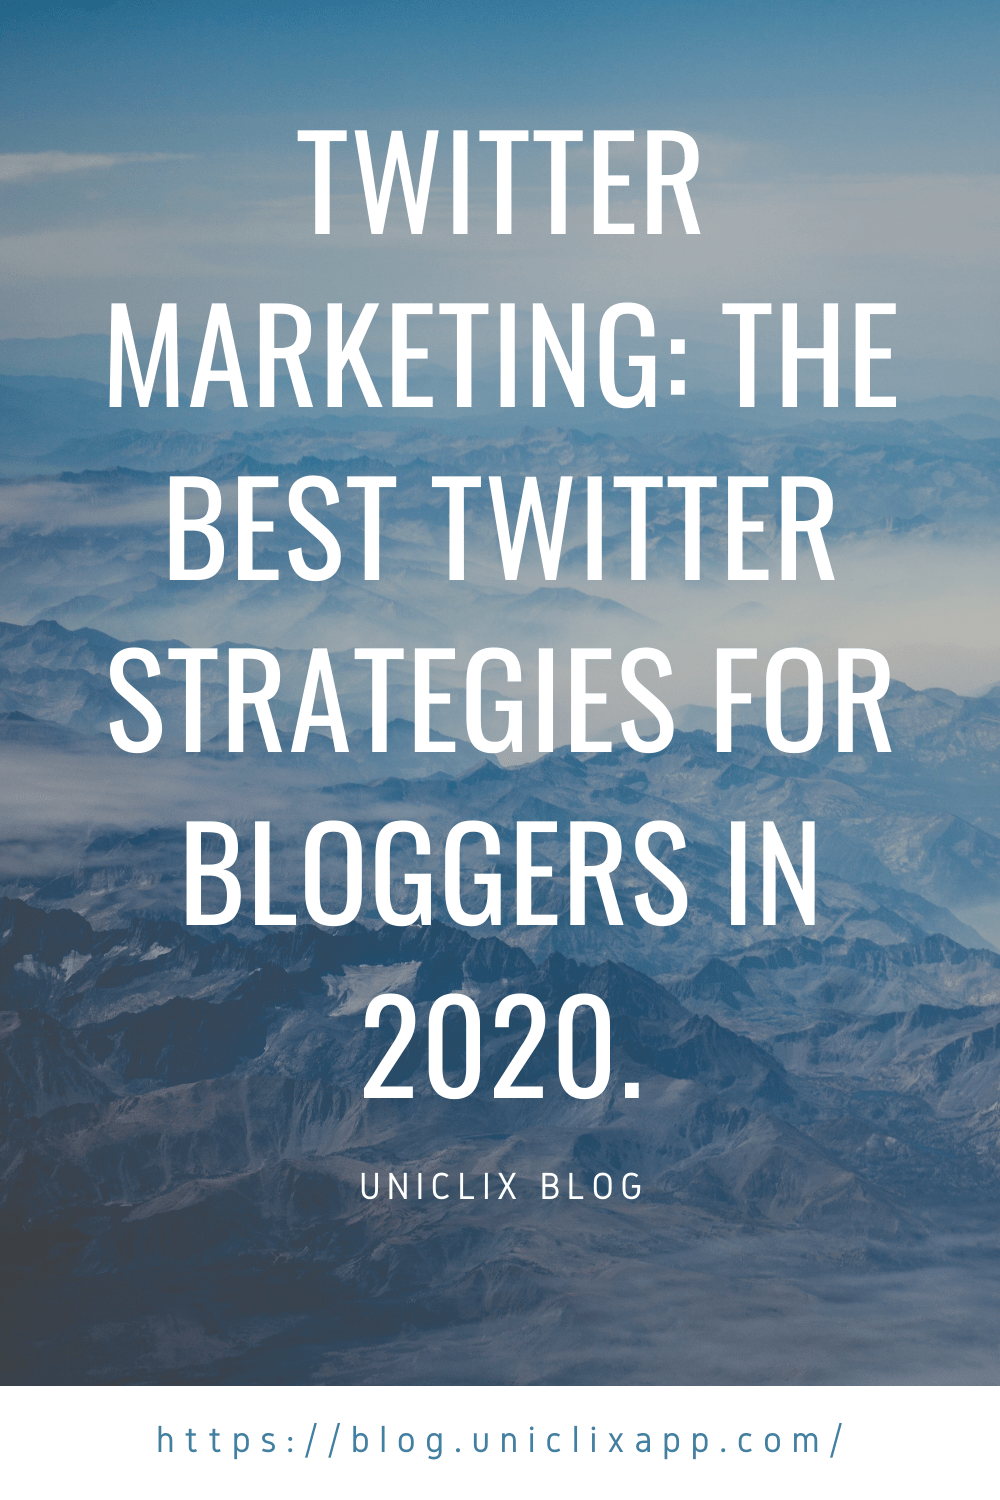 The best twitter strategies for bloggers in 2020